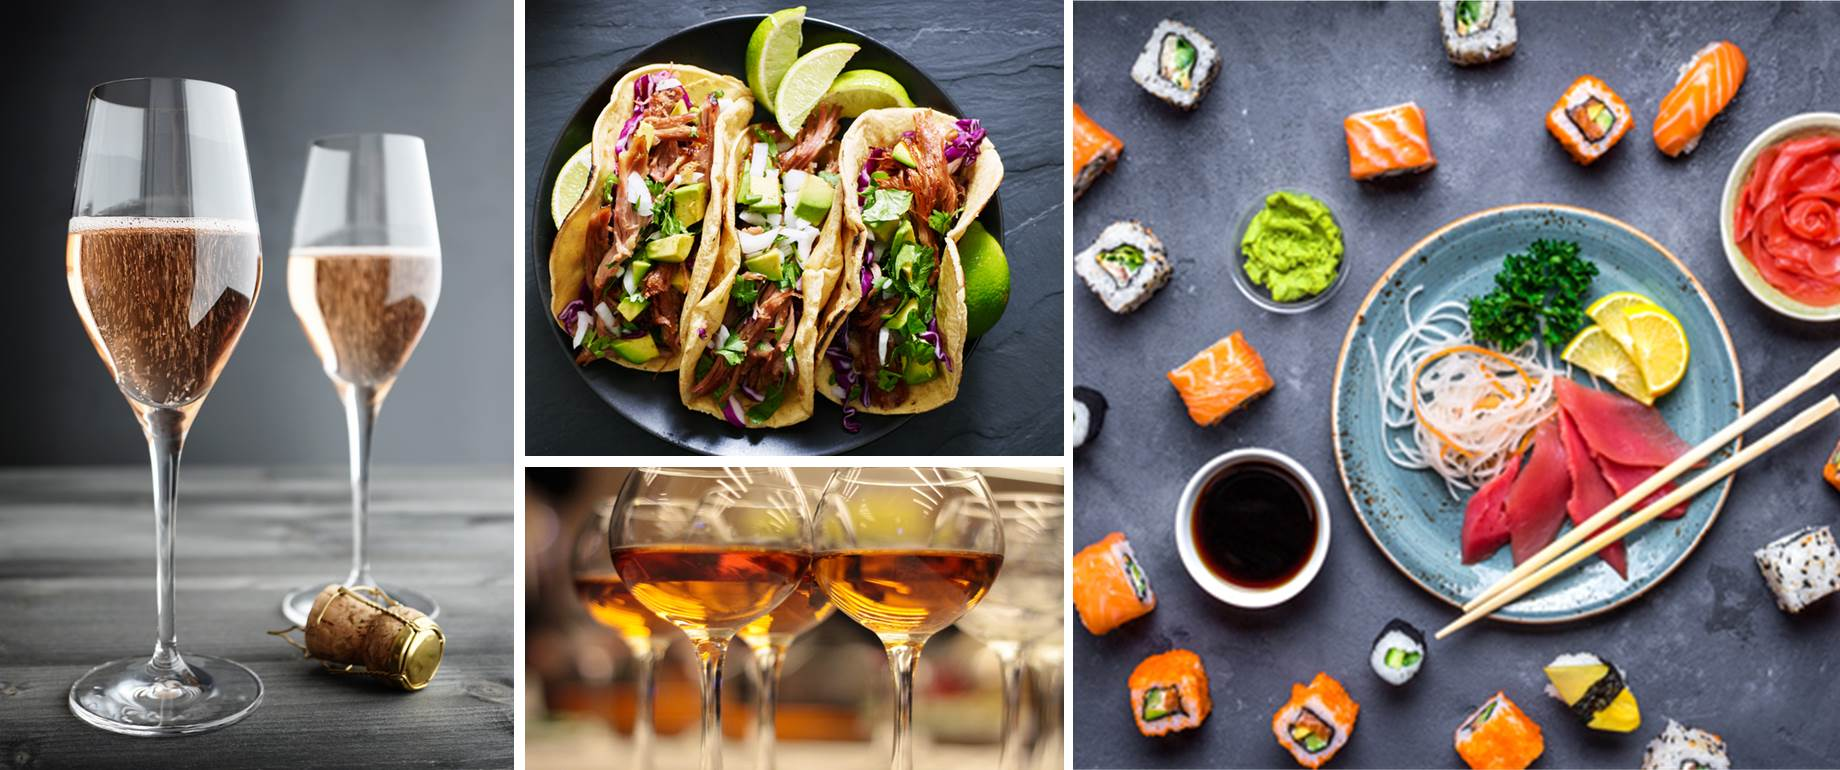 Summer Food and Drink Trends